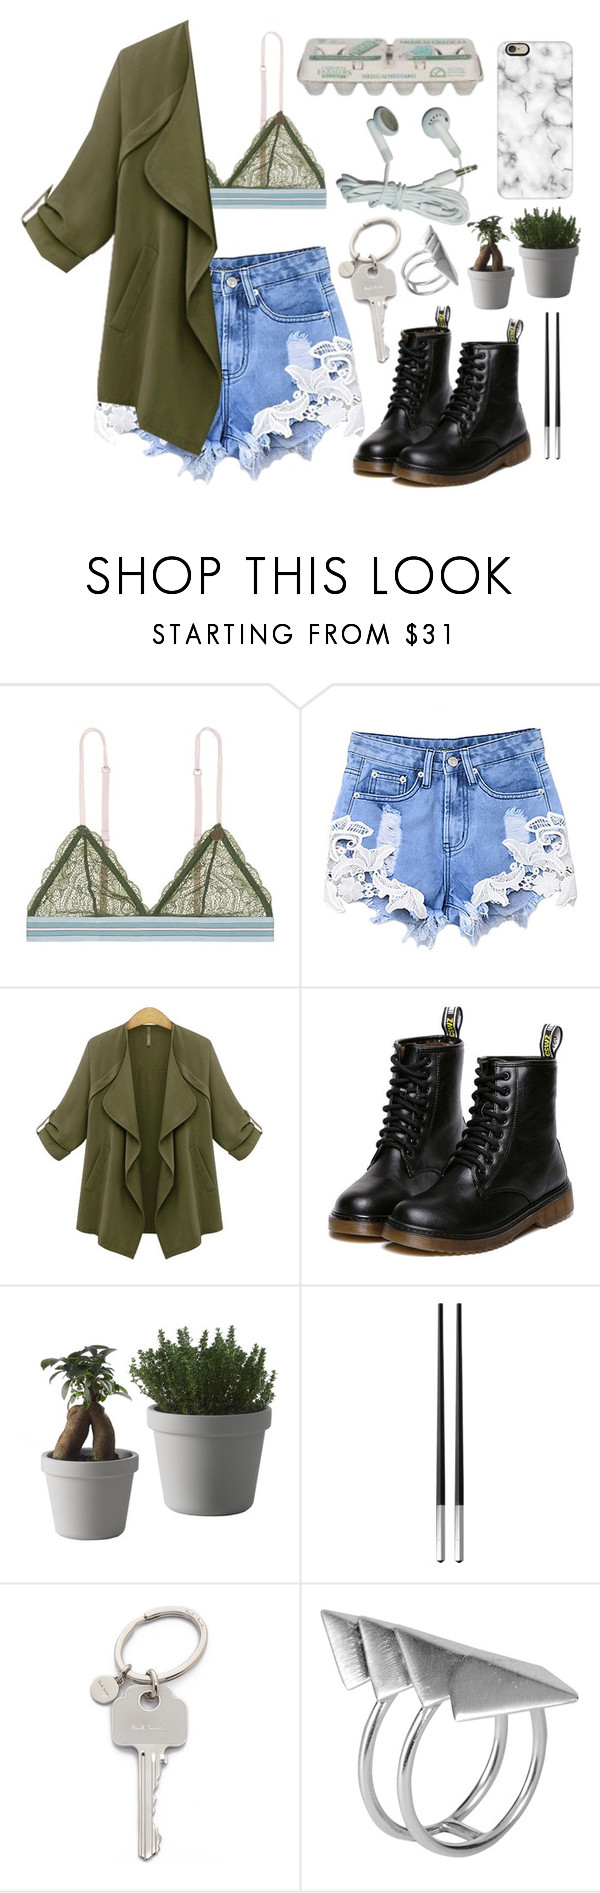 """""""Green Day"""" by mode-222 ❤ liked on Polyvore featuring LoveStories, Market, Muuto, Christofle, Paul Smith, First People First and Casetify"""